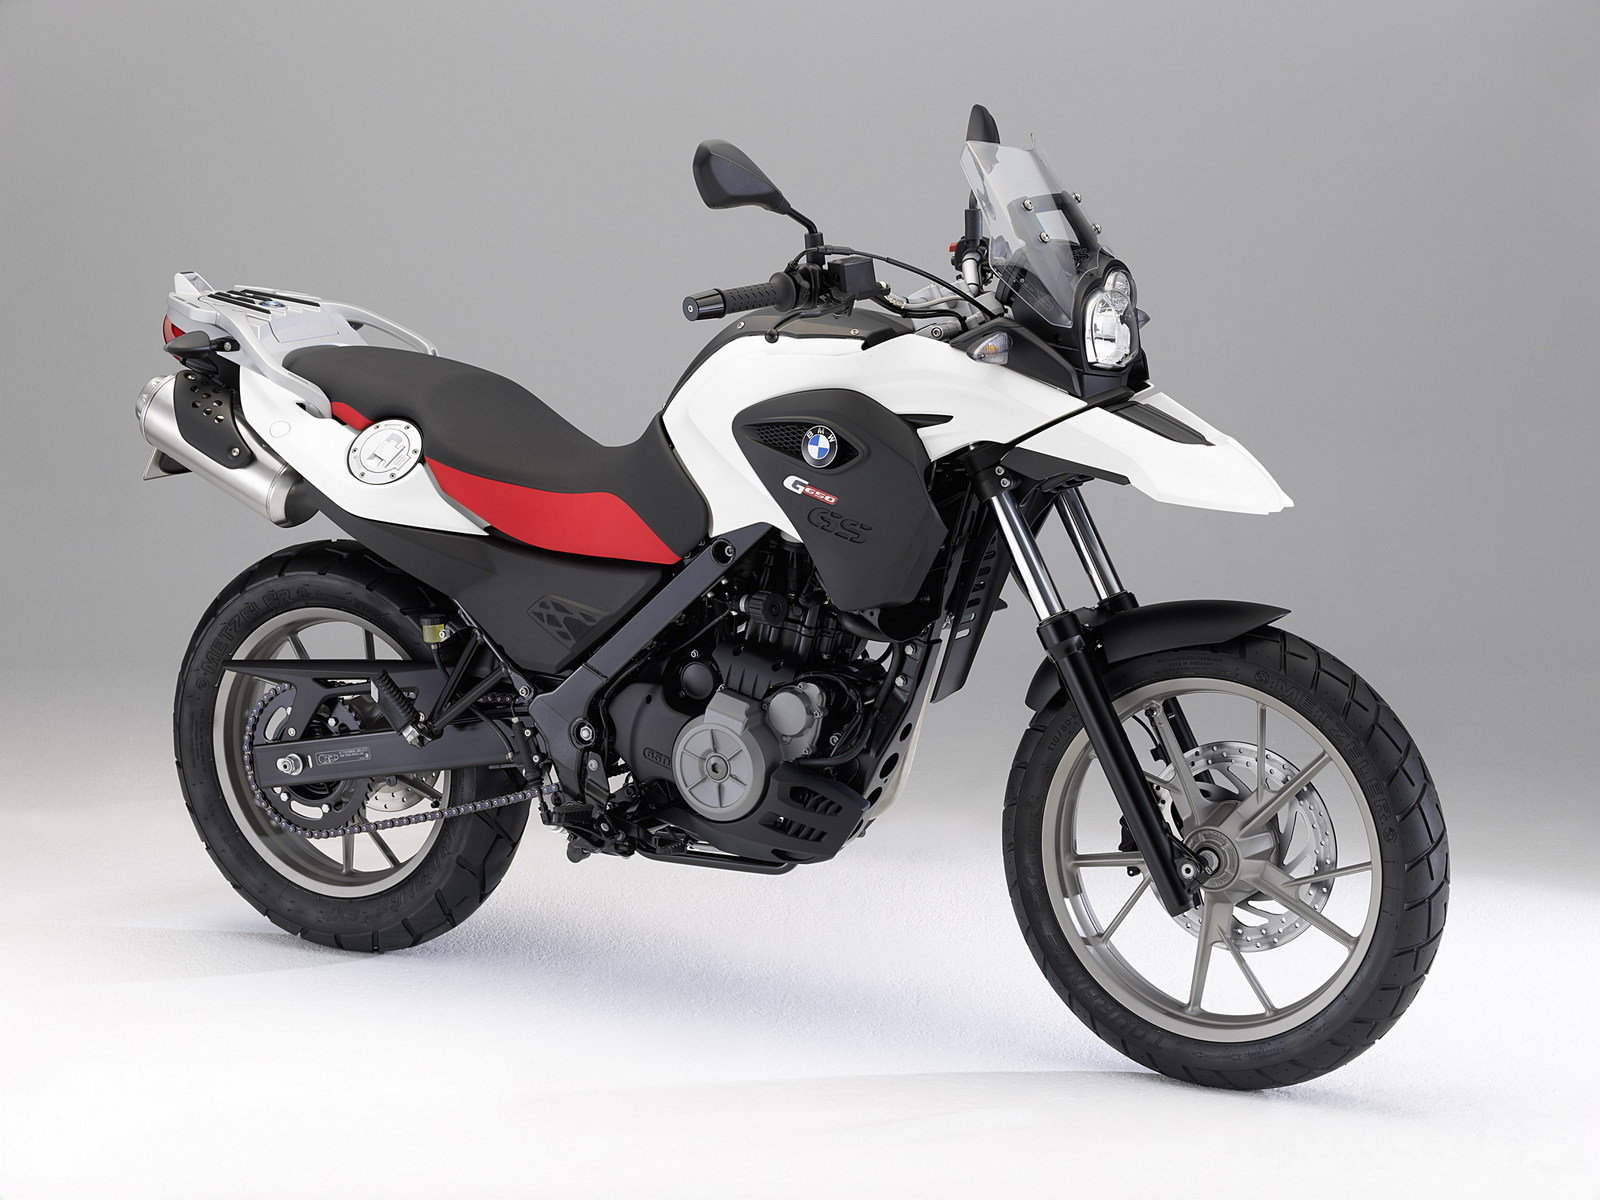 BMW G 650 GS 2010 images #8855